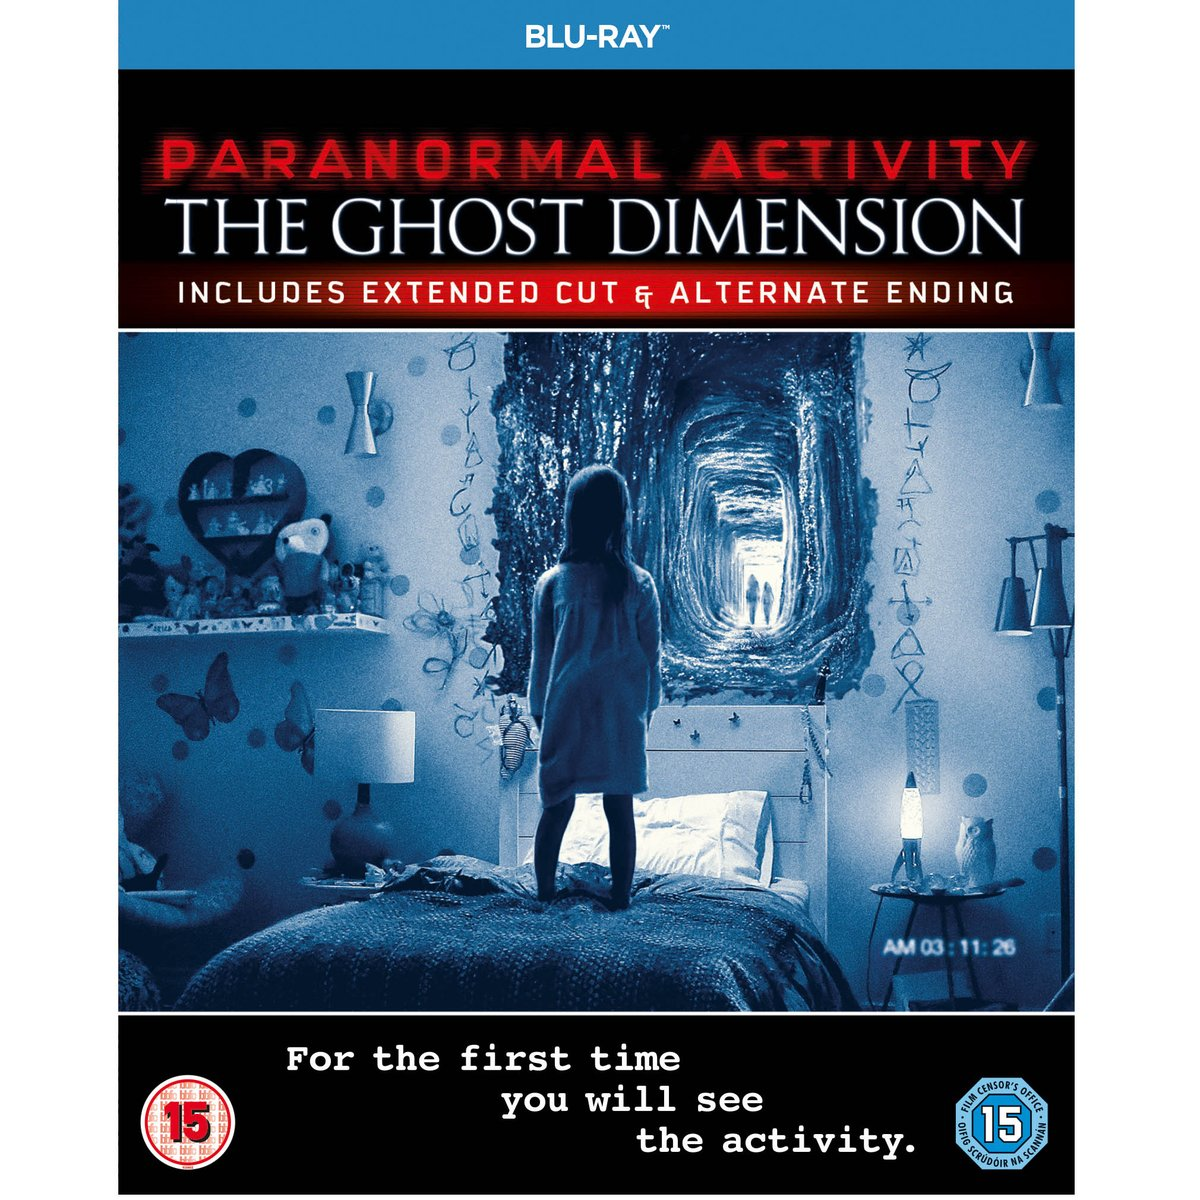 Win! Follow @CultBoxTV & RT to win 'Paranormal Activity The Ghost Dimension' - https://t.co/BCyKkp92M2 https://t.co/nA39b1dmwa